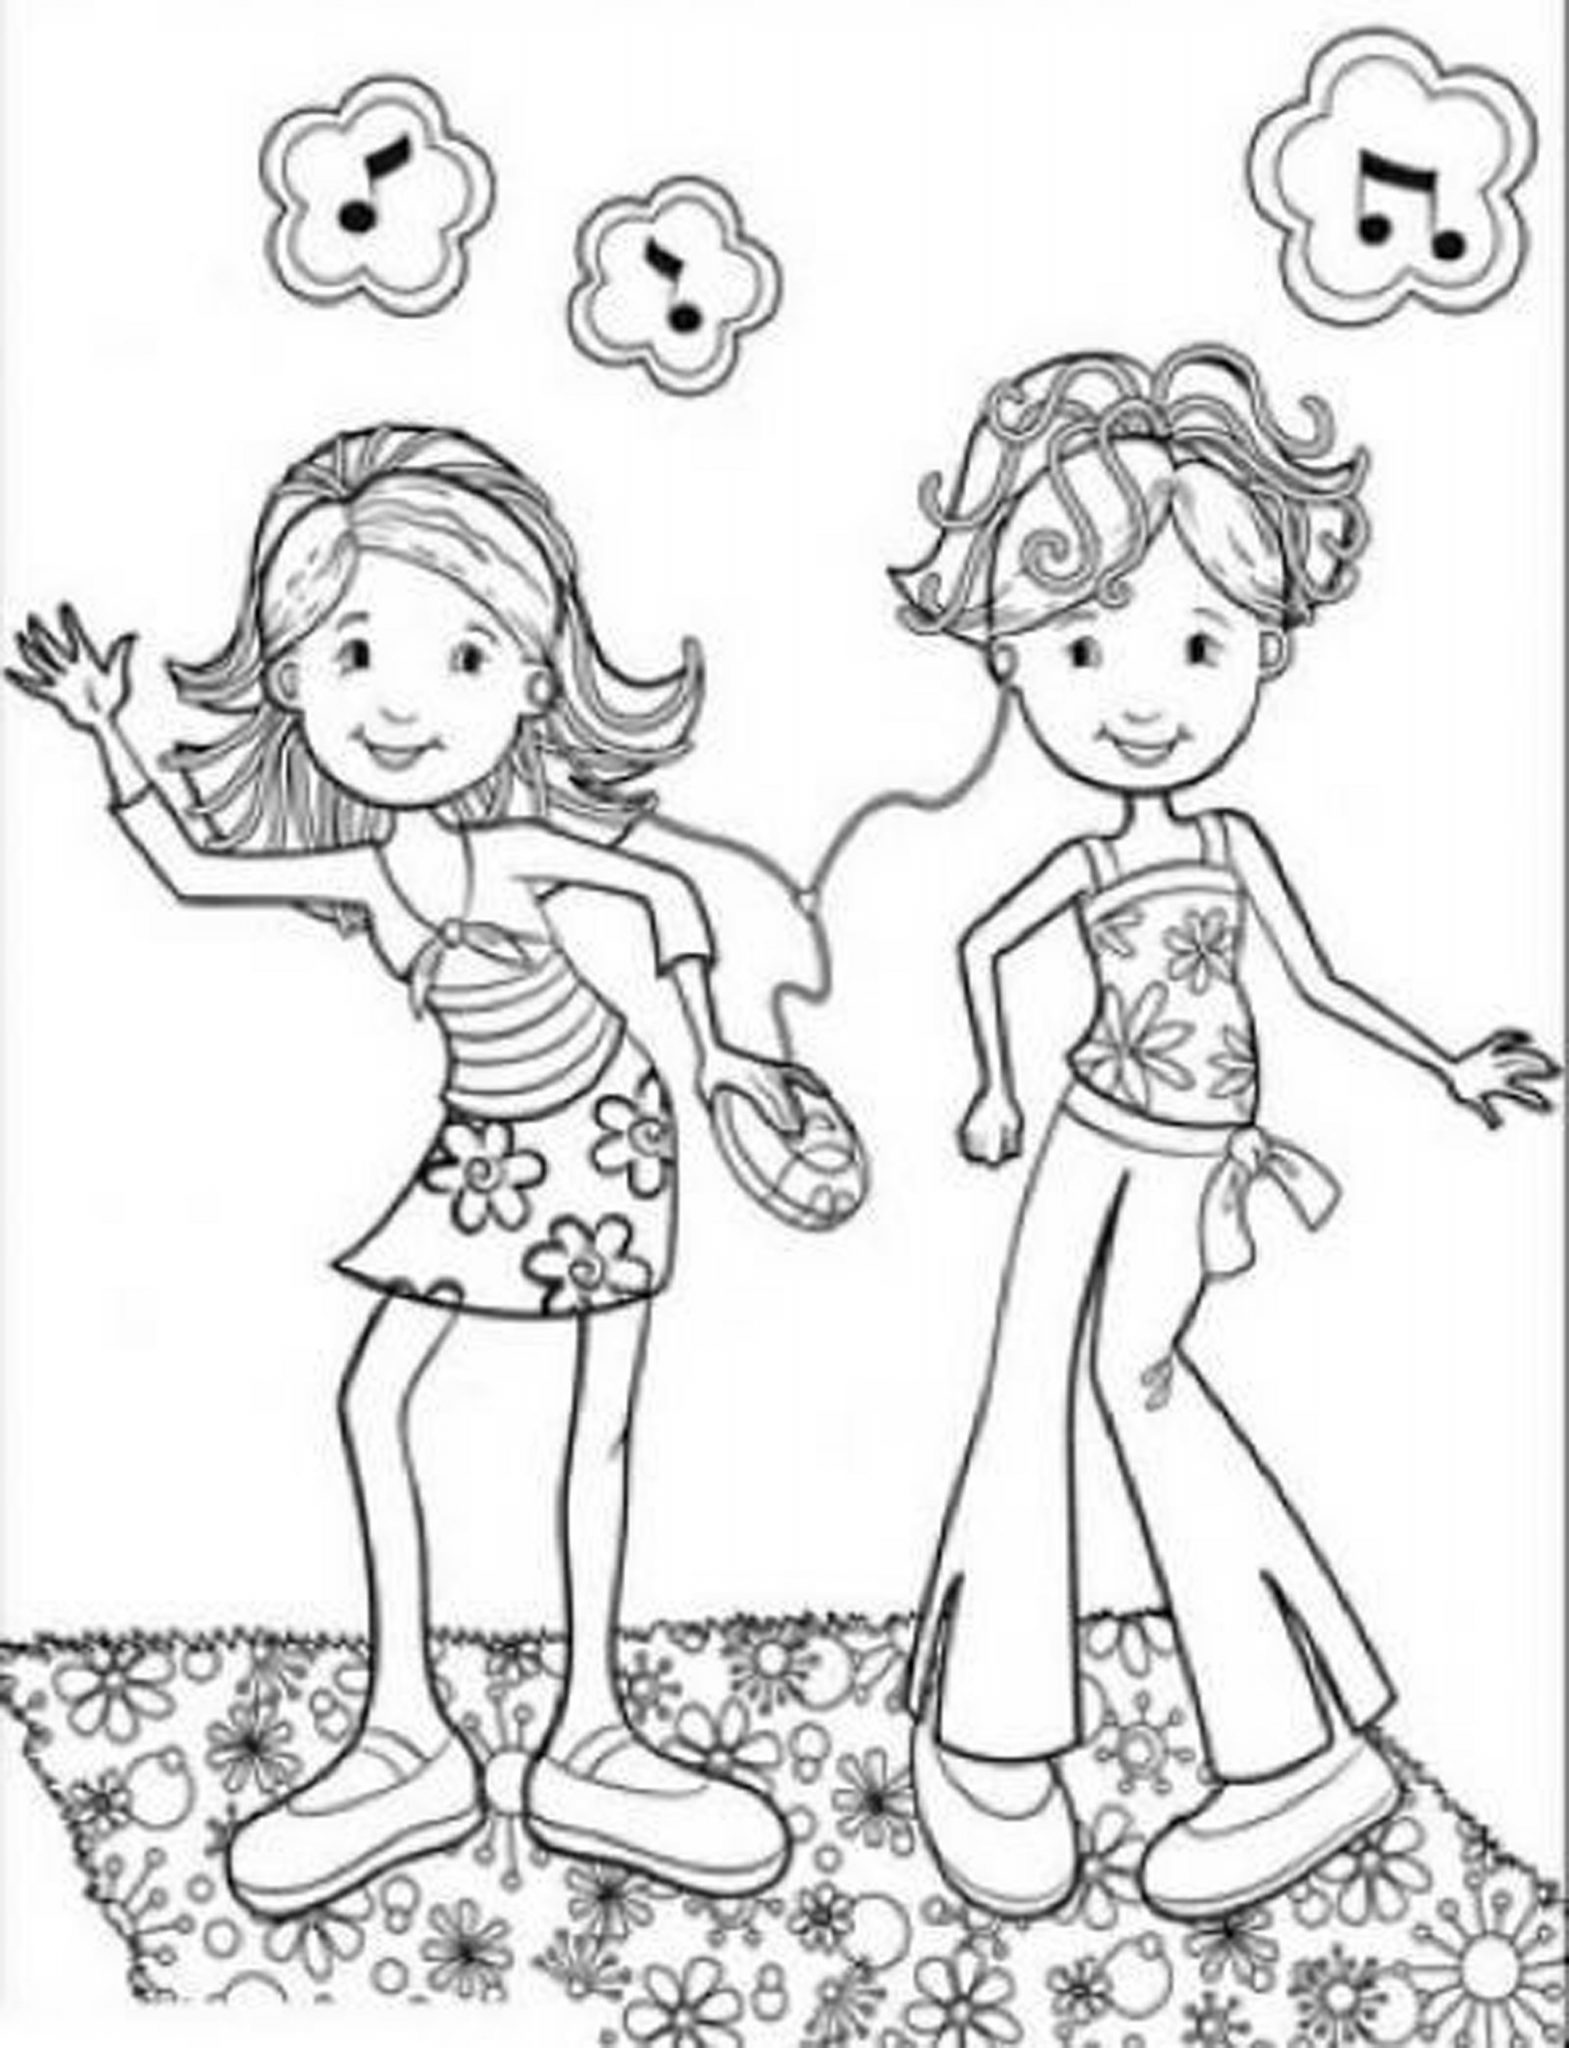 coloring pages girls kids n funcom 65 coloring pages of groovy girls pages coloring girls